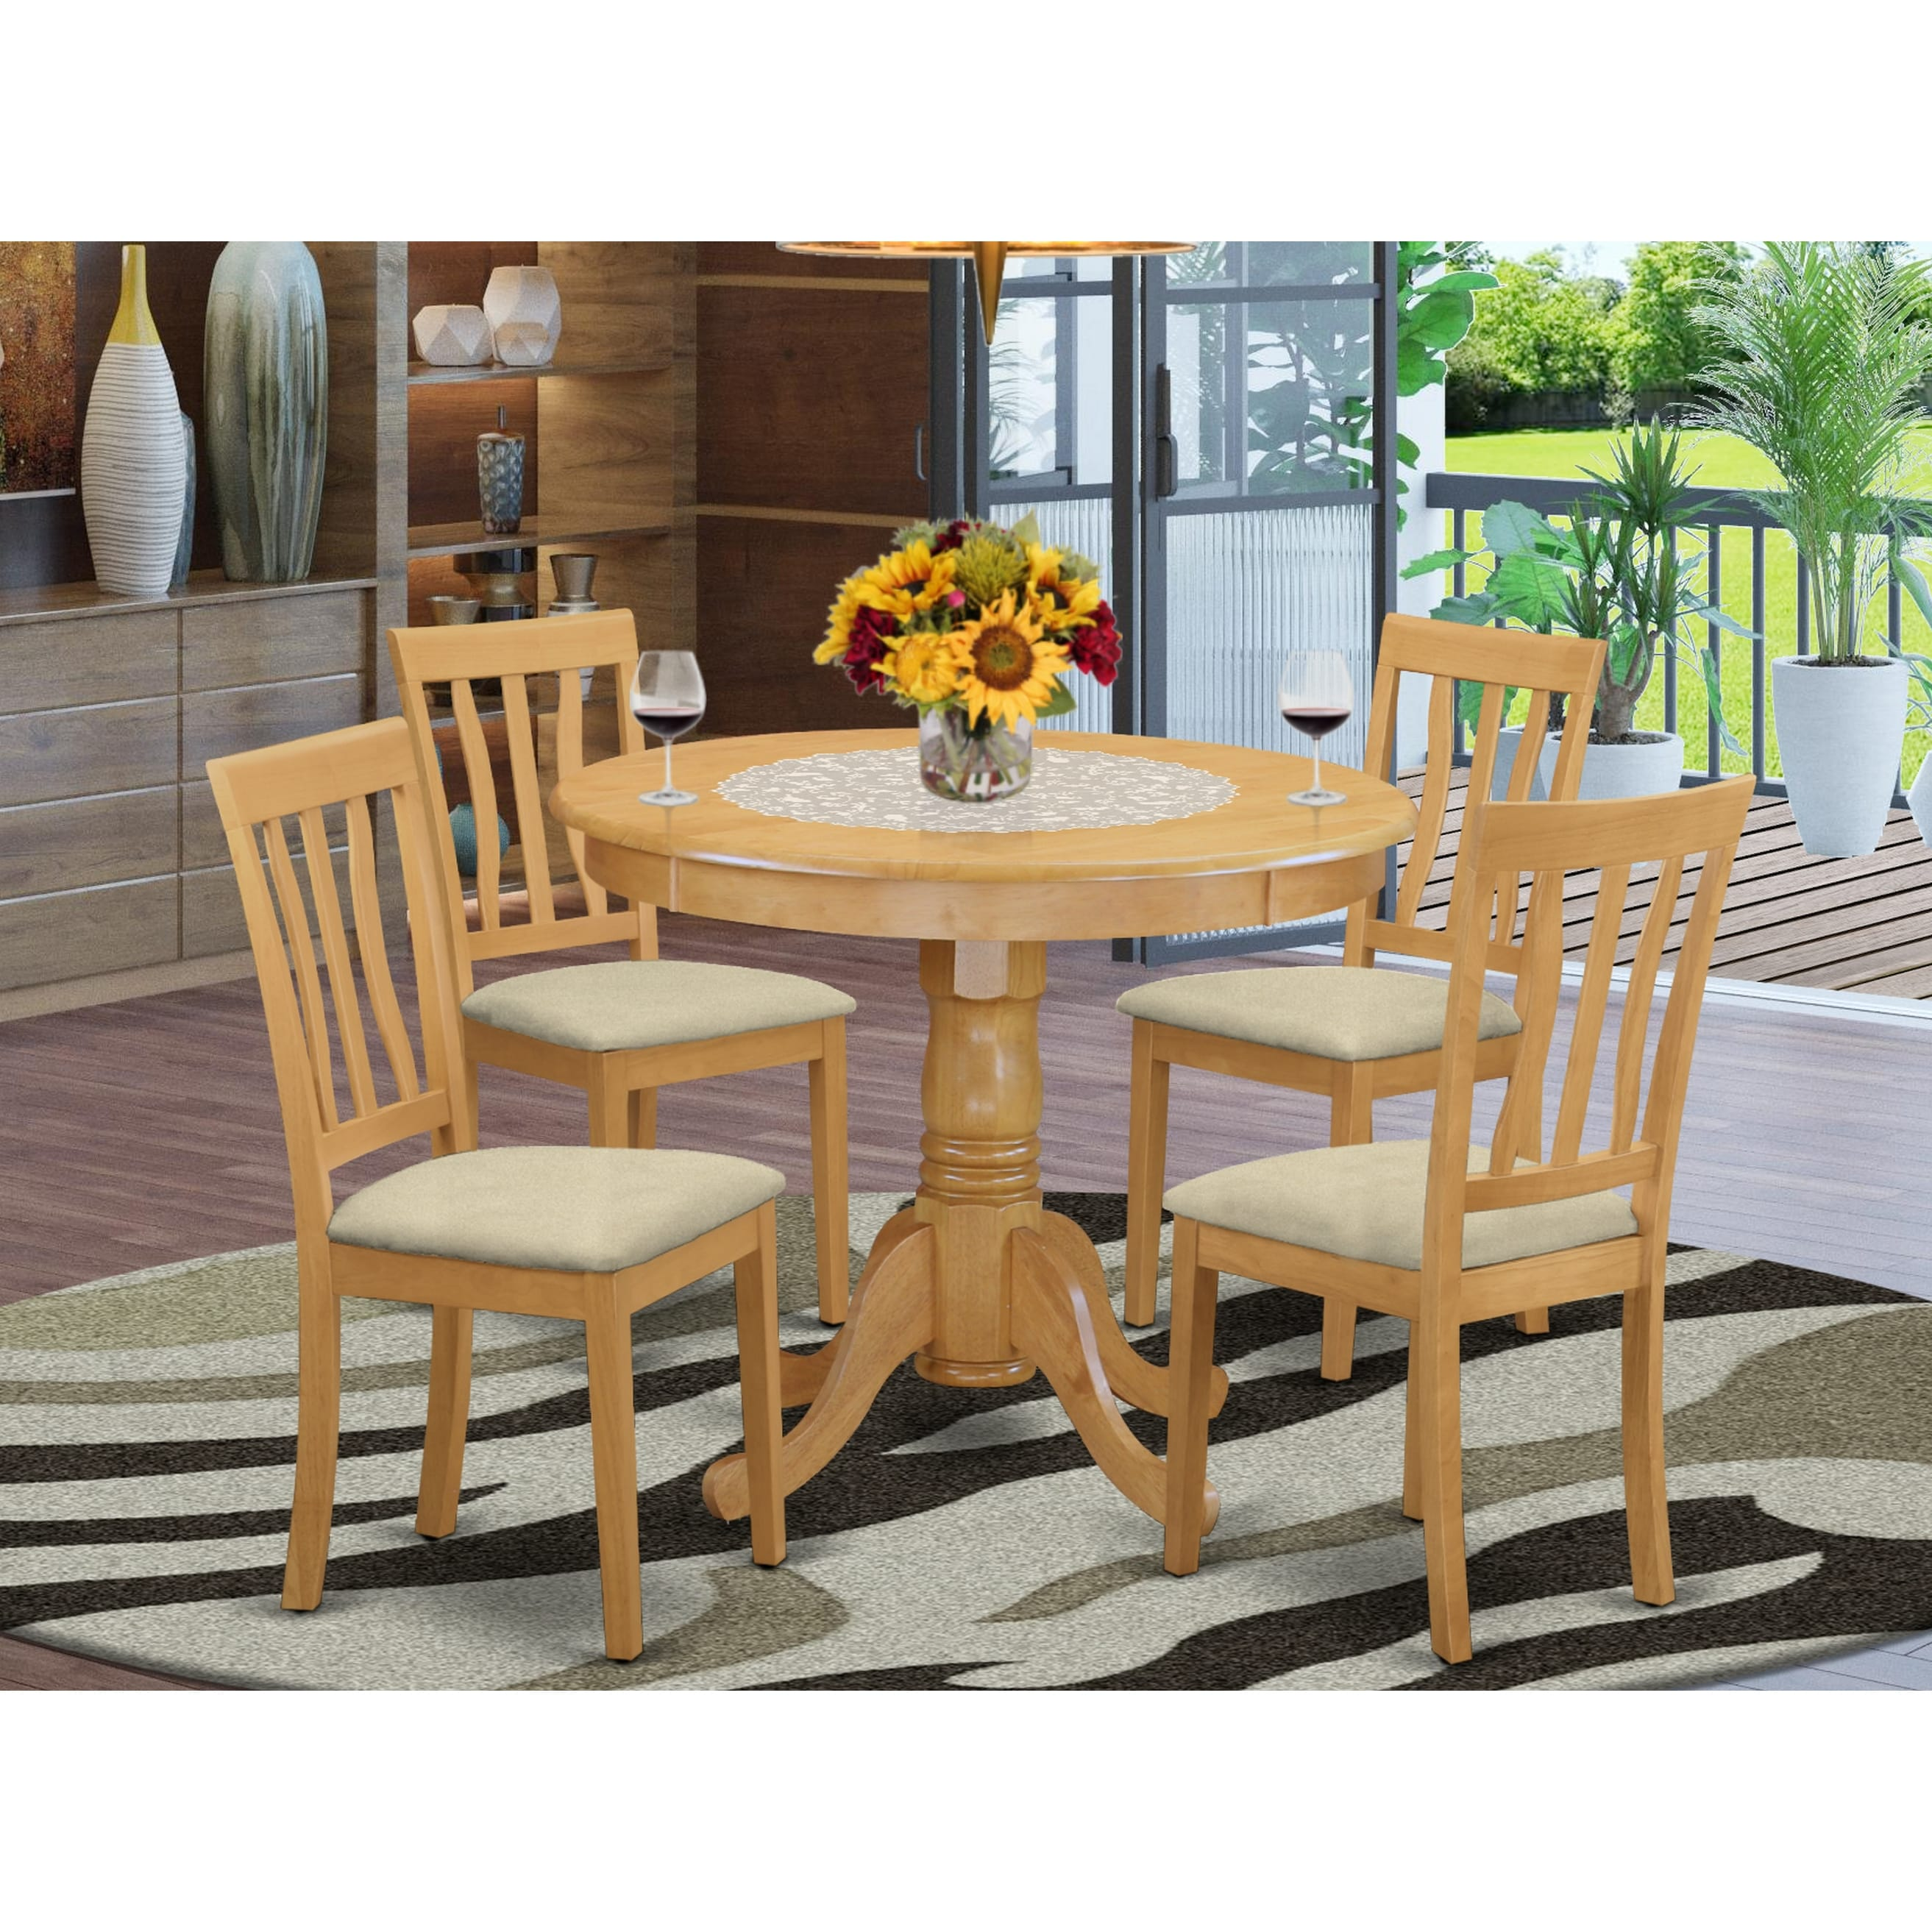 Oak Small Kitchen Table and 5 Chairs Dining Set